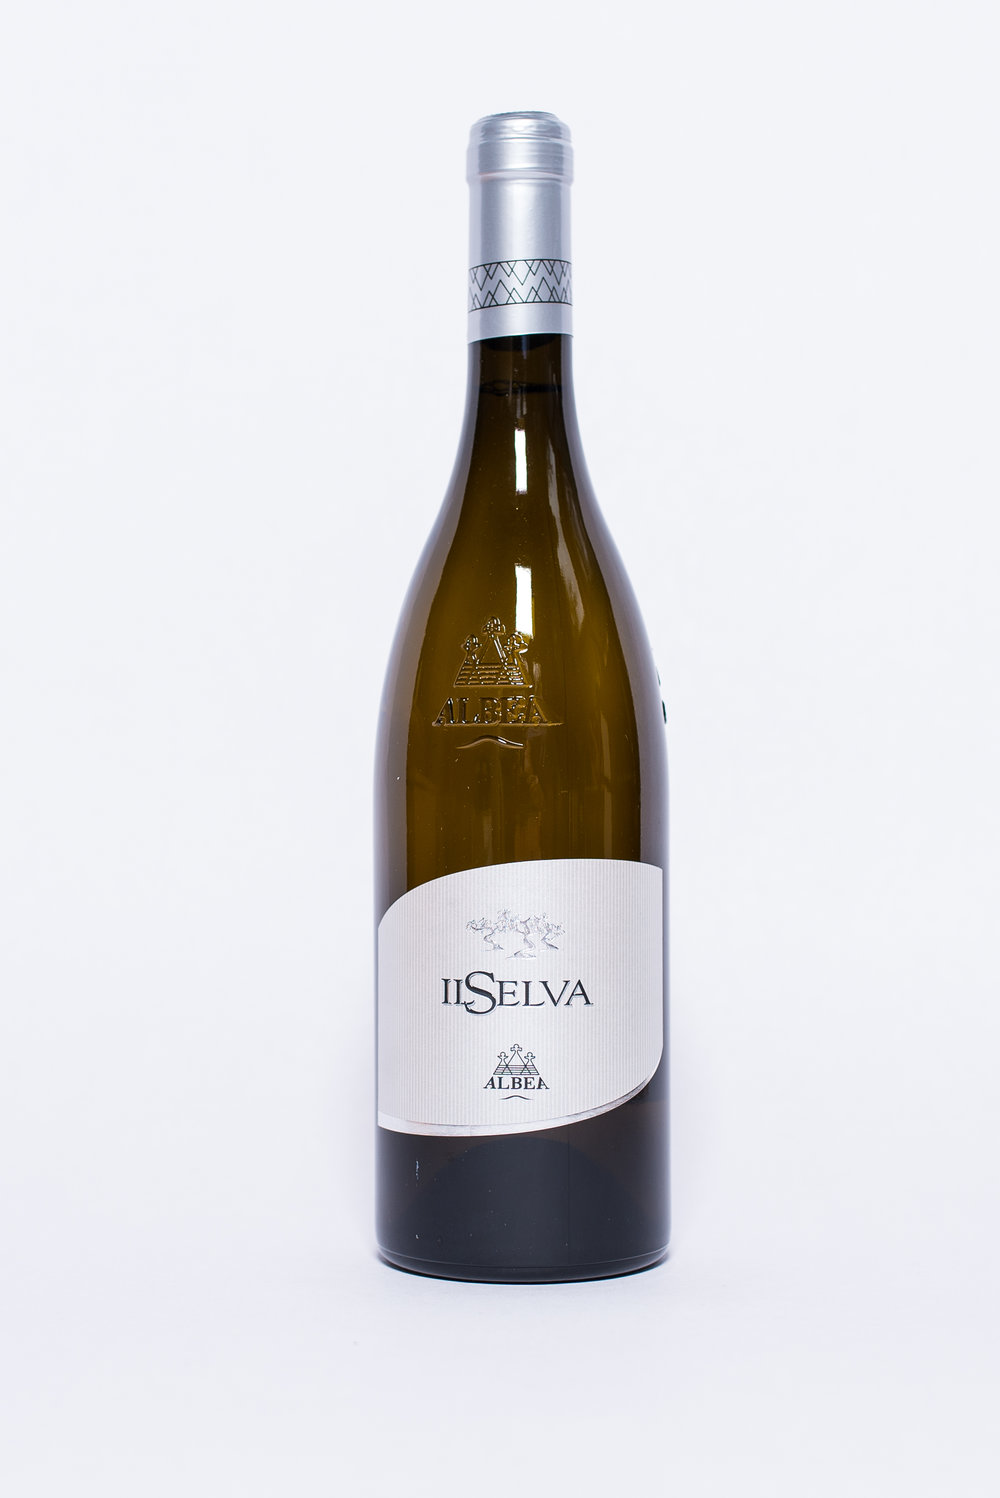 Il Selva White Blend 2016    Producer:   Cantina Albea    Region:  Puglia  Grapes:  Verdeca 50%, Bianco d'Alessano 35%, Fiano Minutolo 15%  Nose: F loral with elegant, intense hints of herbs  Taste:  Fresh, fruity, with moderate minerality